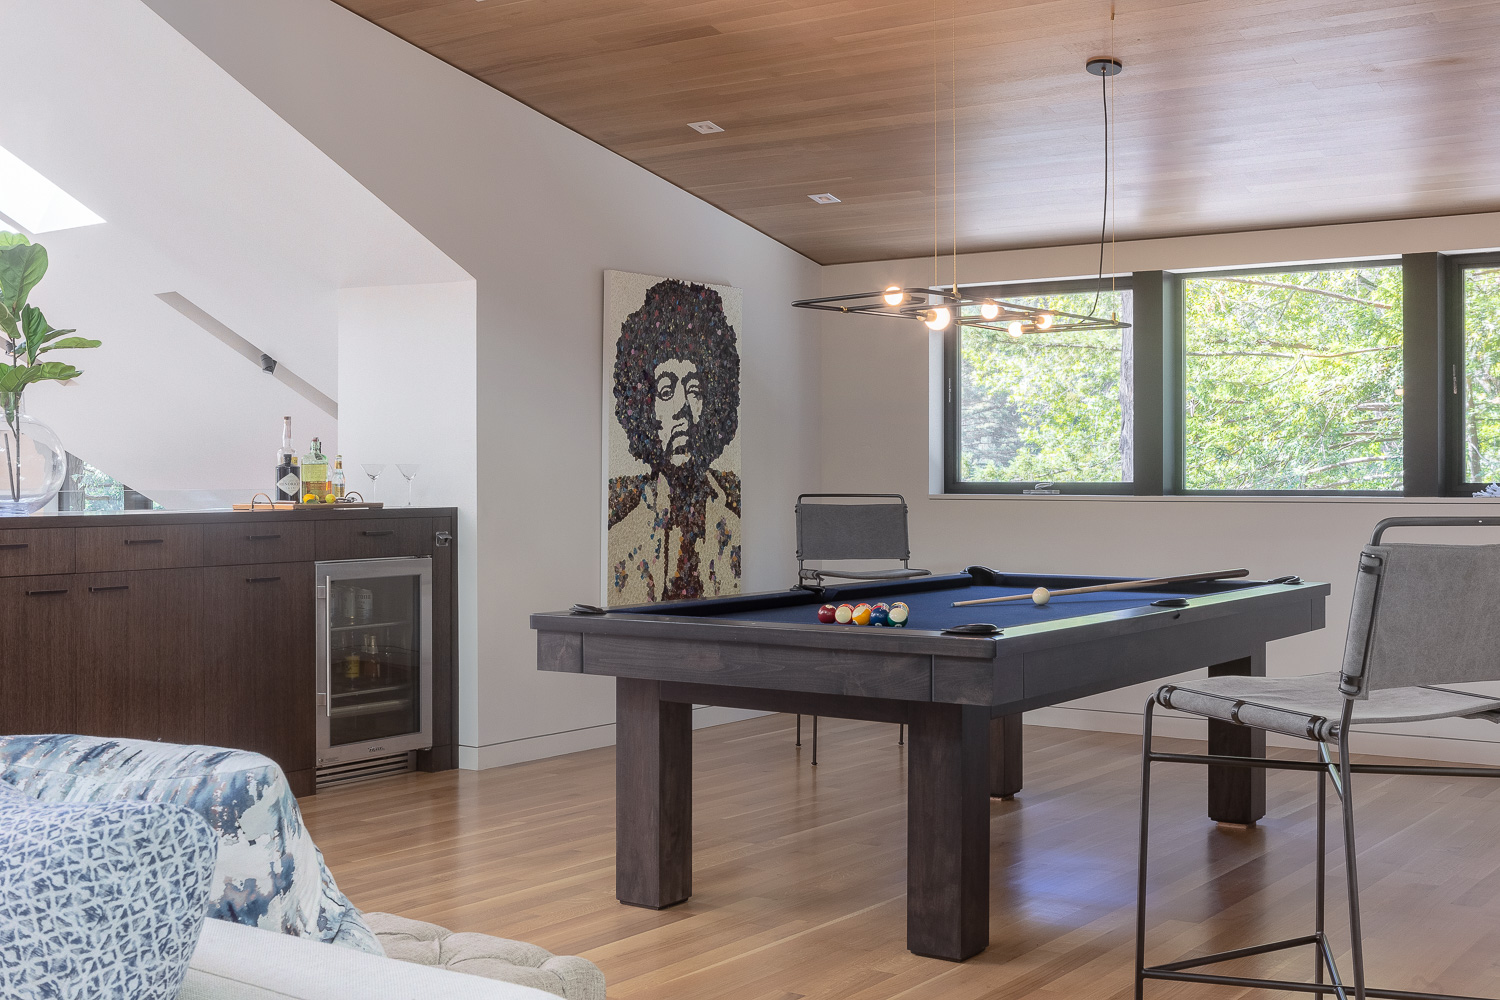 Behind the sectional sits a pool table, decorated with lights from Lambert et Fils. Calabrese custom designed the pool table to suit the room; often, houses in the Bay Area don't have pool tables because they're constrained by space, she notes. The bar stools are from Fourhands.